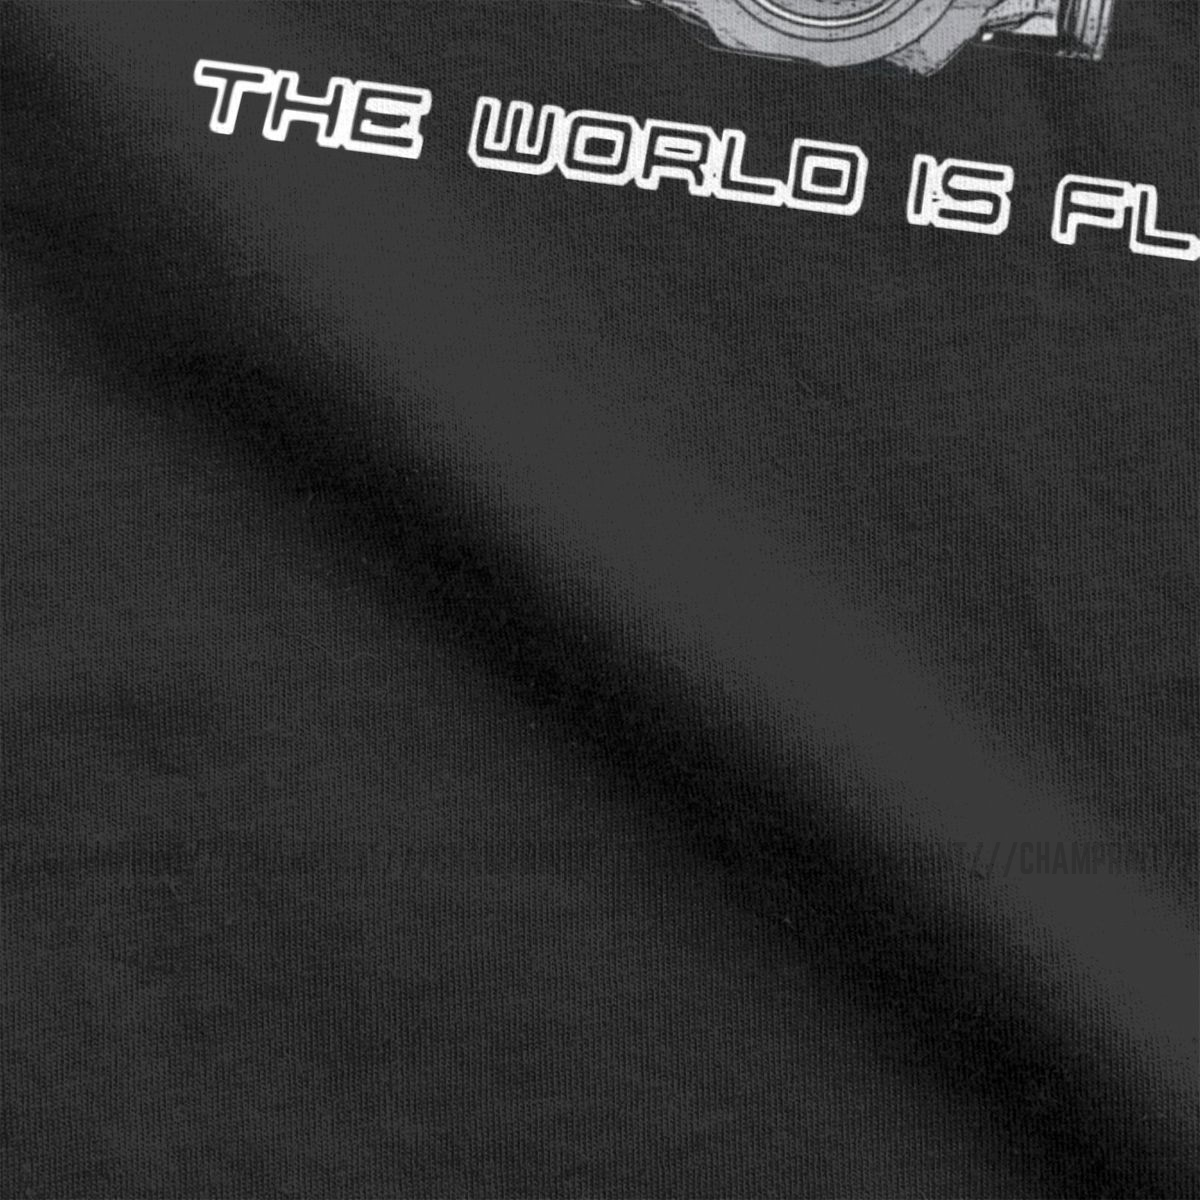 Car Geek Love Boxer Engine The World Is Flat Men T Shirt Leisure Tees Short Sleeve Round Neck T-Shirt Pure Cotton Printed Tops